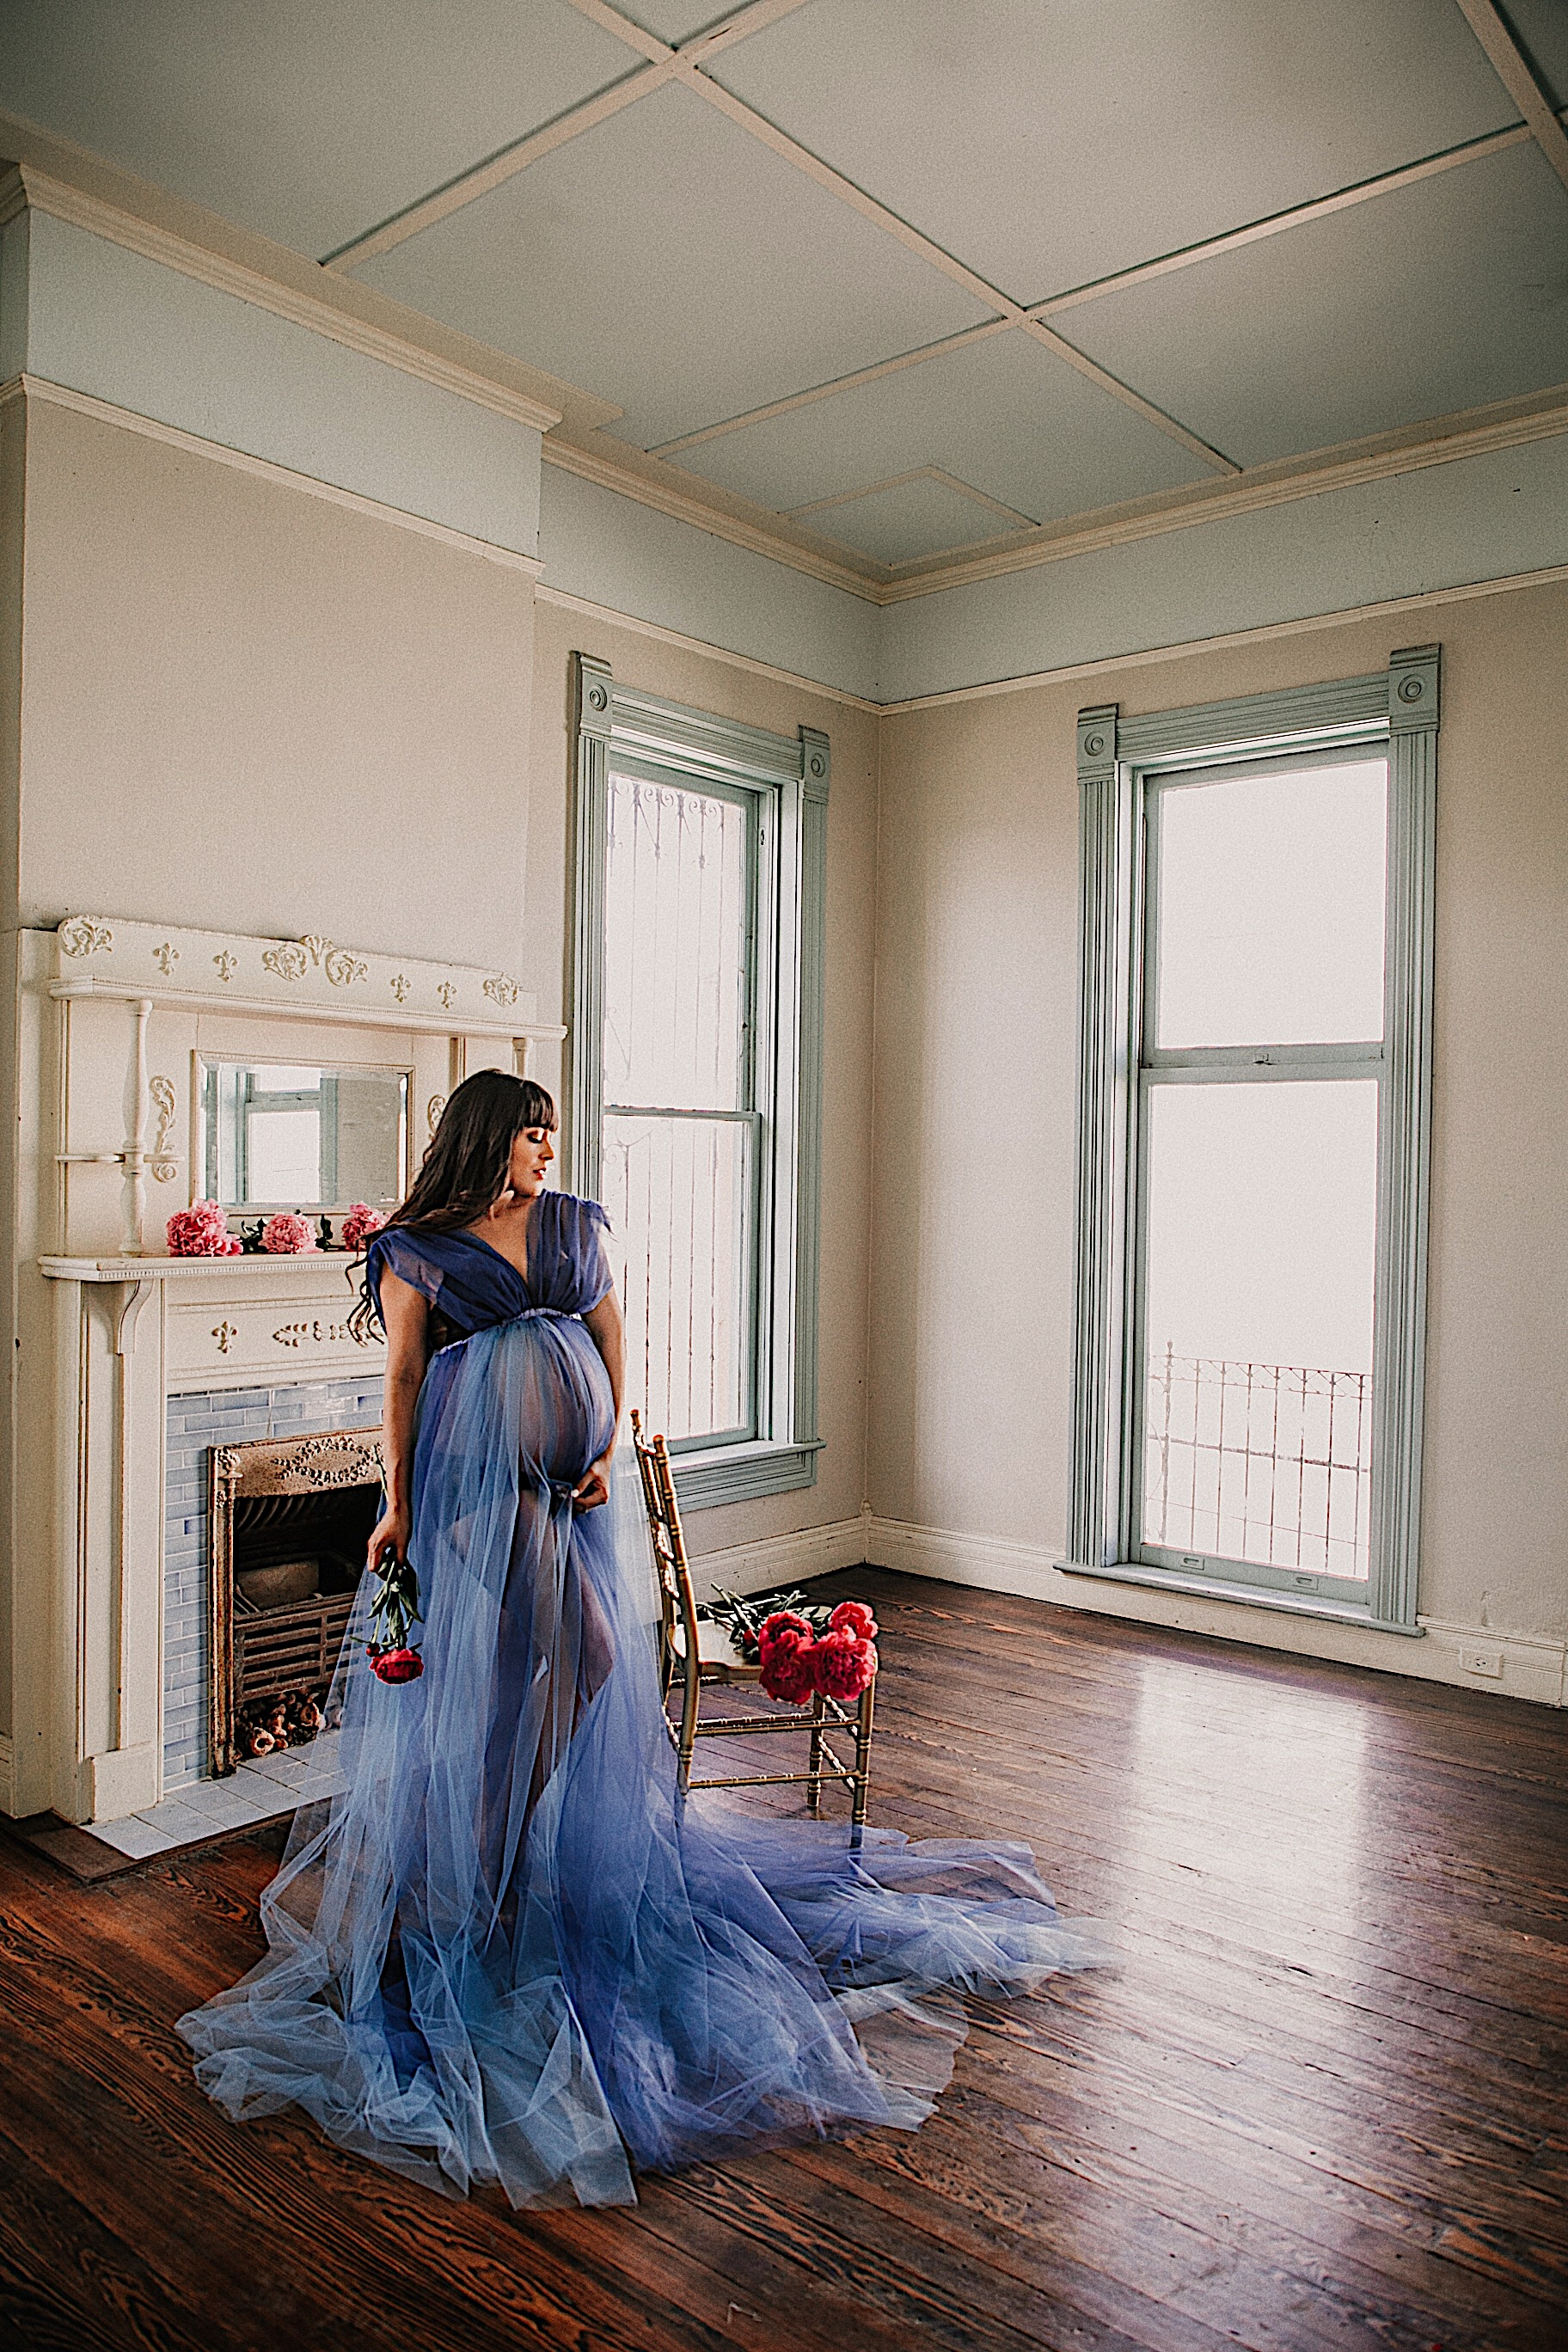 Maternity photos spanglishfashion (3).JPG